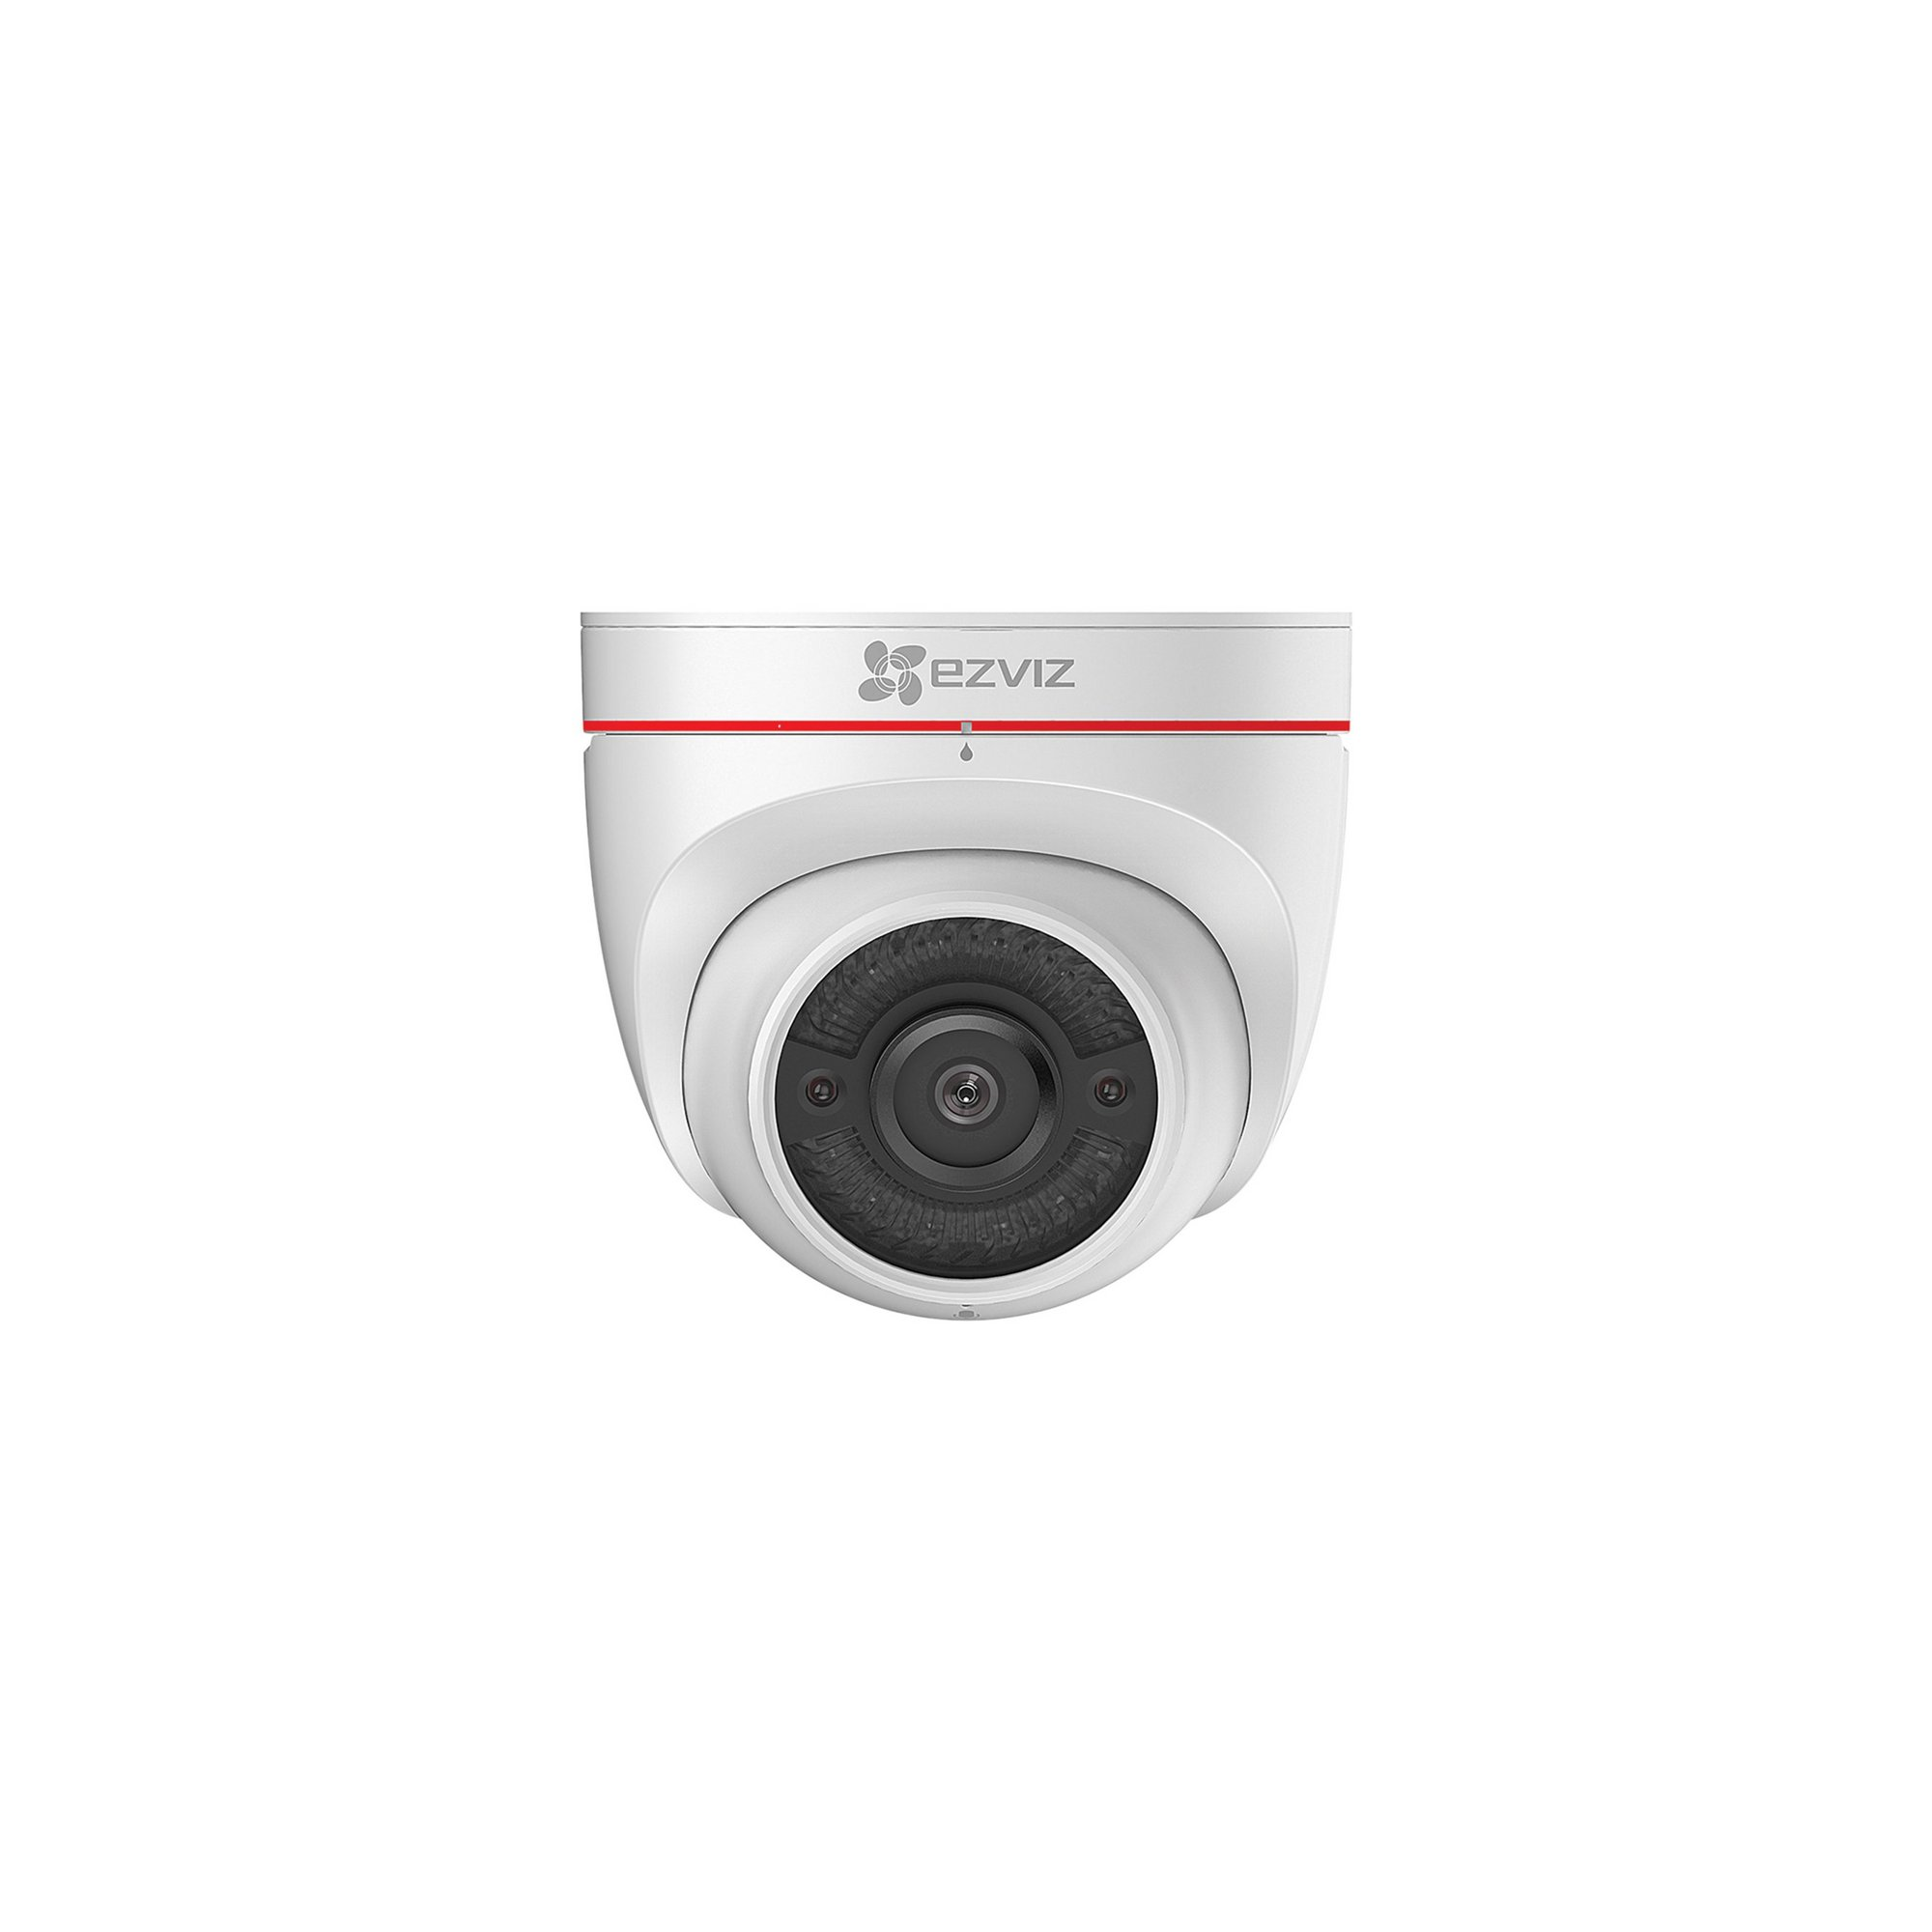 Image of EZVIZ C4W Full HD Wi-Fi Outdoor Camera